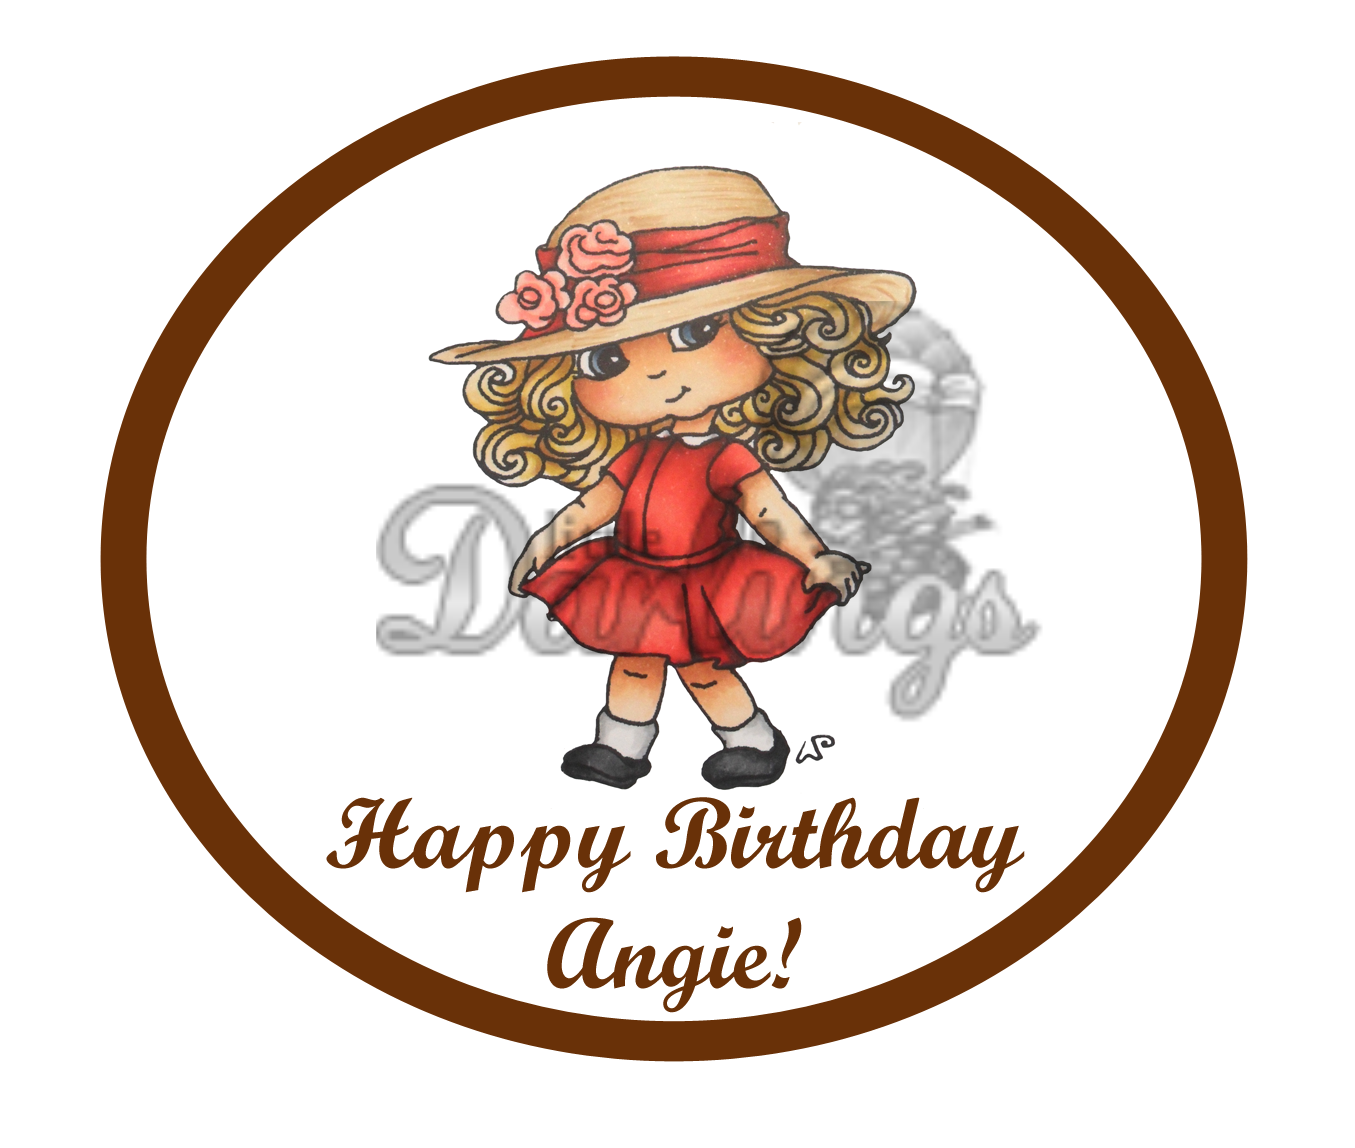 Today Is My Magnolia Licious DT Sister Angies Birthday And Mindy Another Sis Good Friend Came Up With An Awesome Idea To Pay A Special